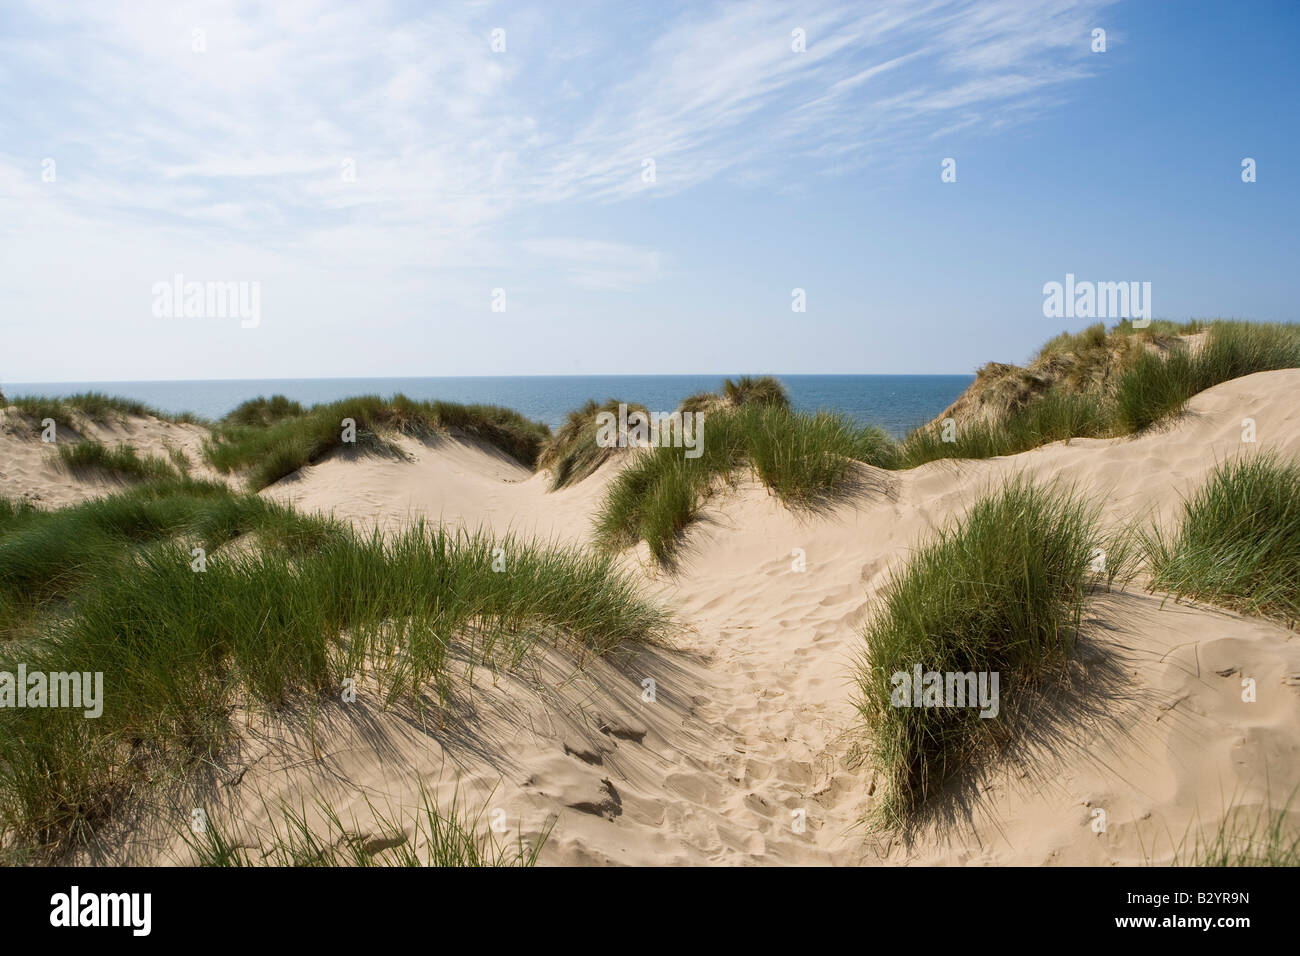 Marram Grass, Ammophilia arenaria, on mobile sand dunes. Formby. - Stock Image